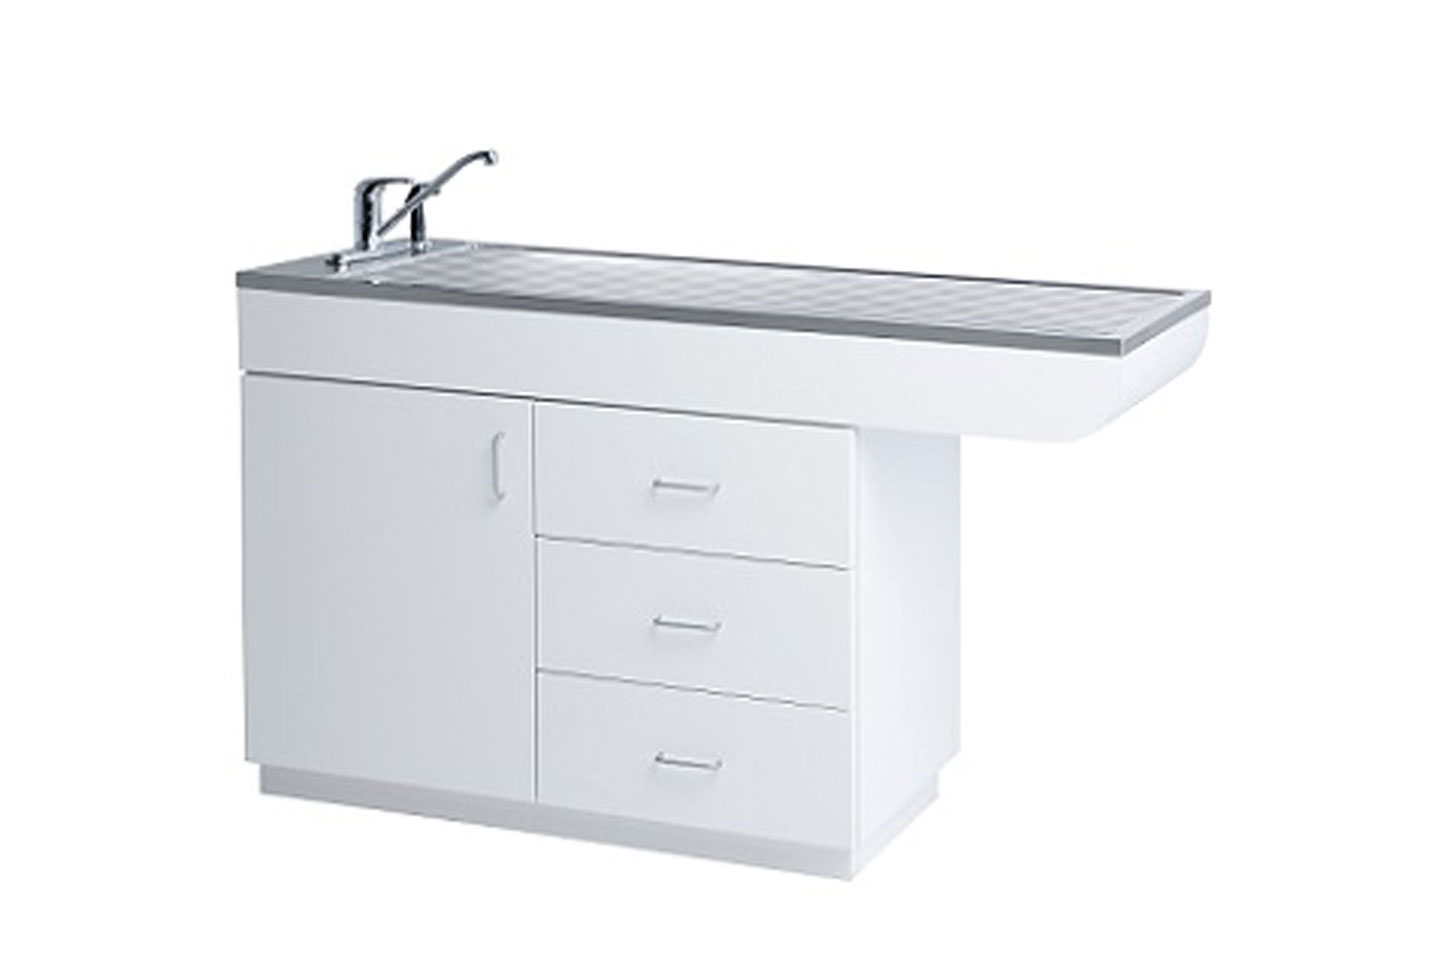 cut-away-wetprep-with-5-deep-tub--3-drawers-and-door12d3814c933a46429b07d59c287beebf (1)